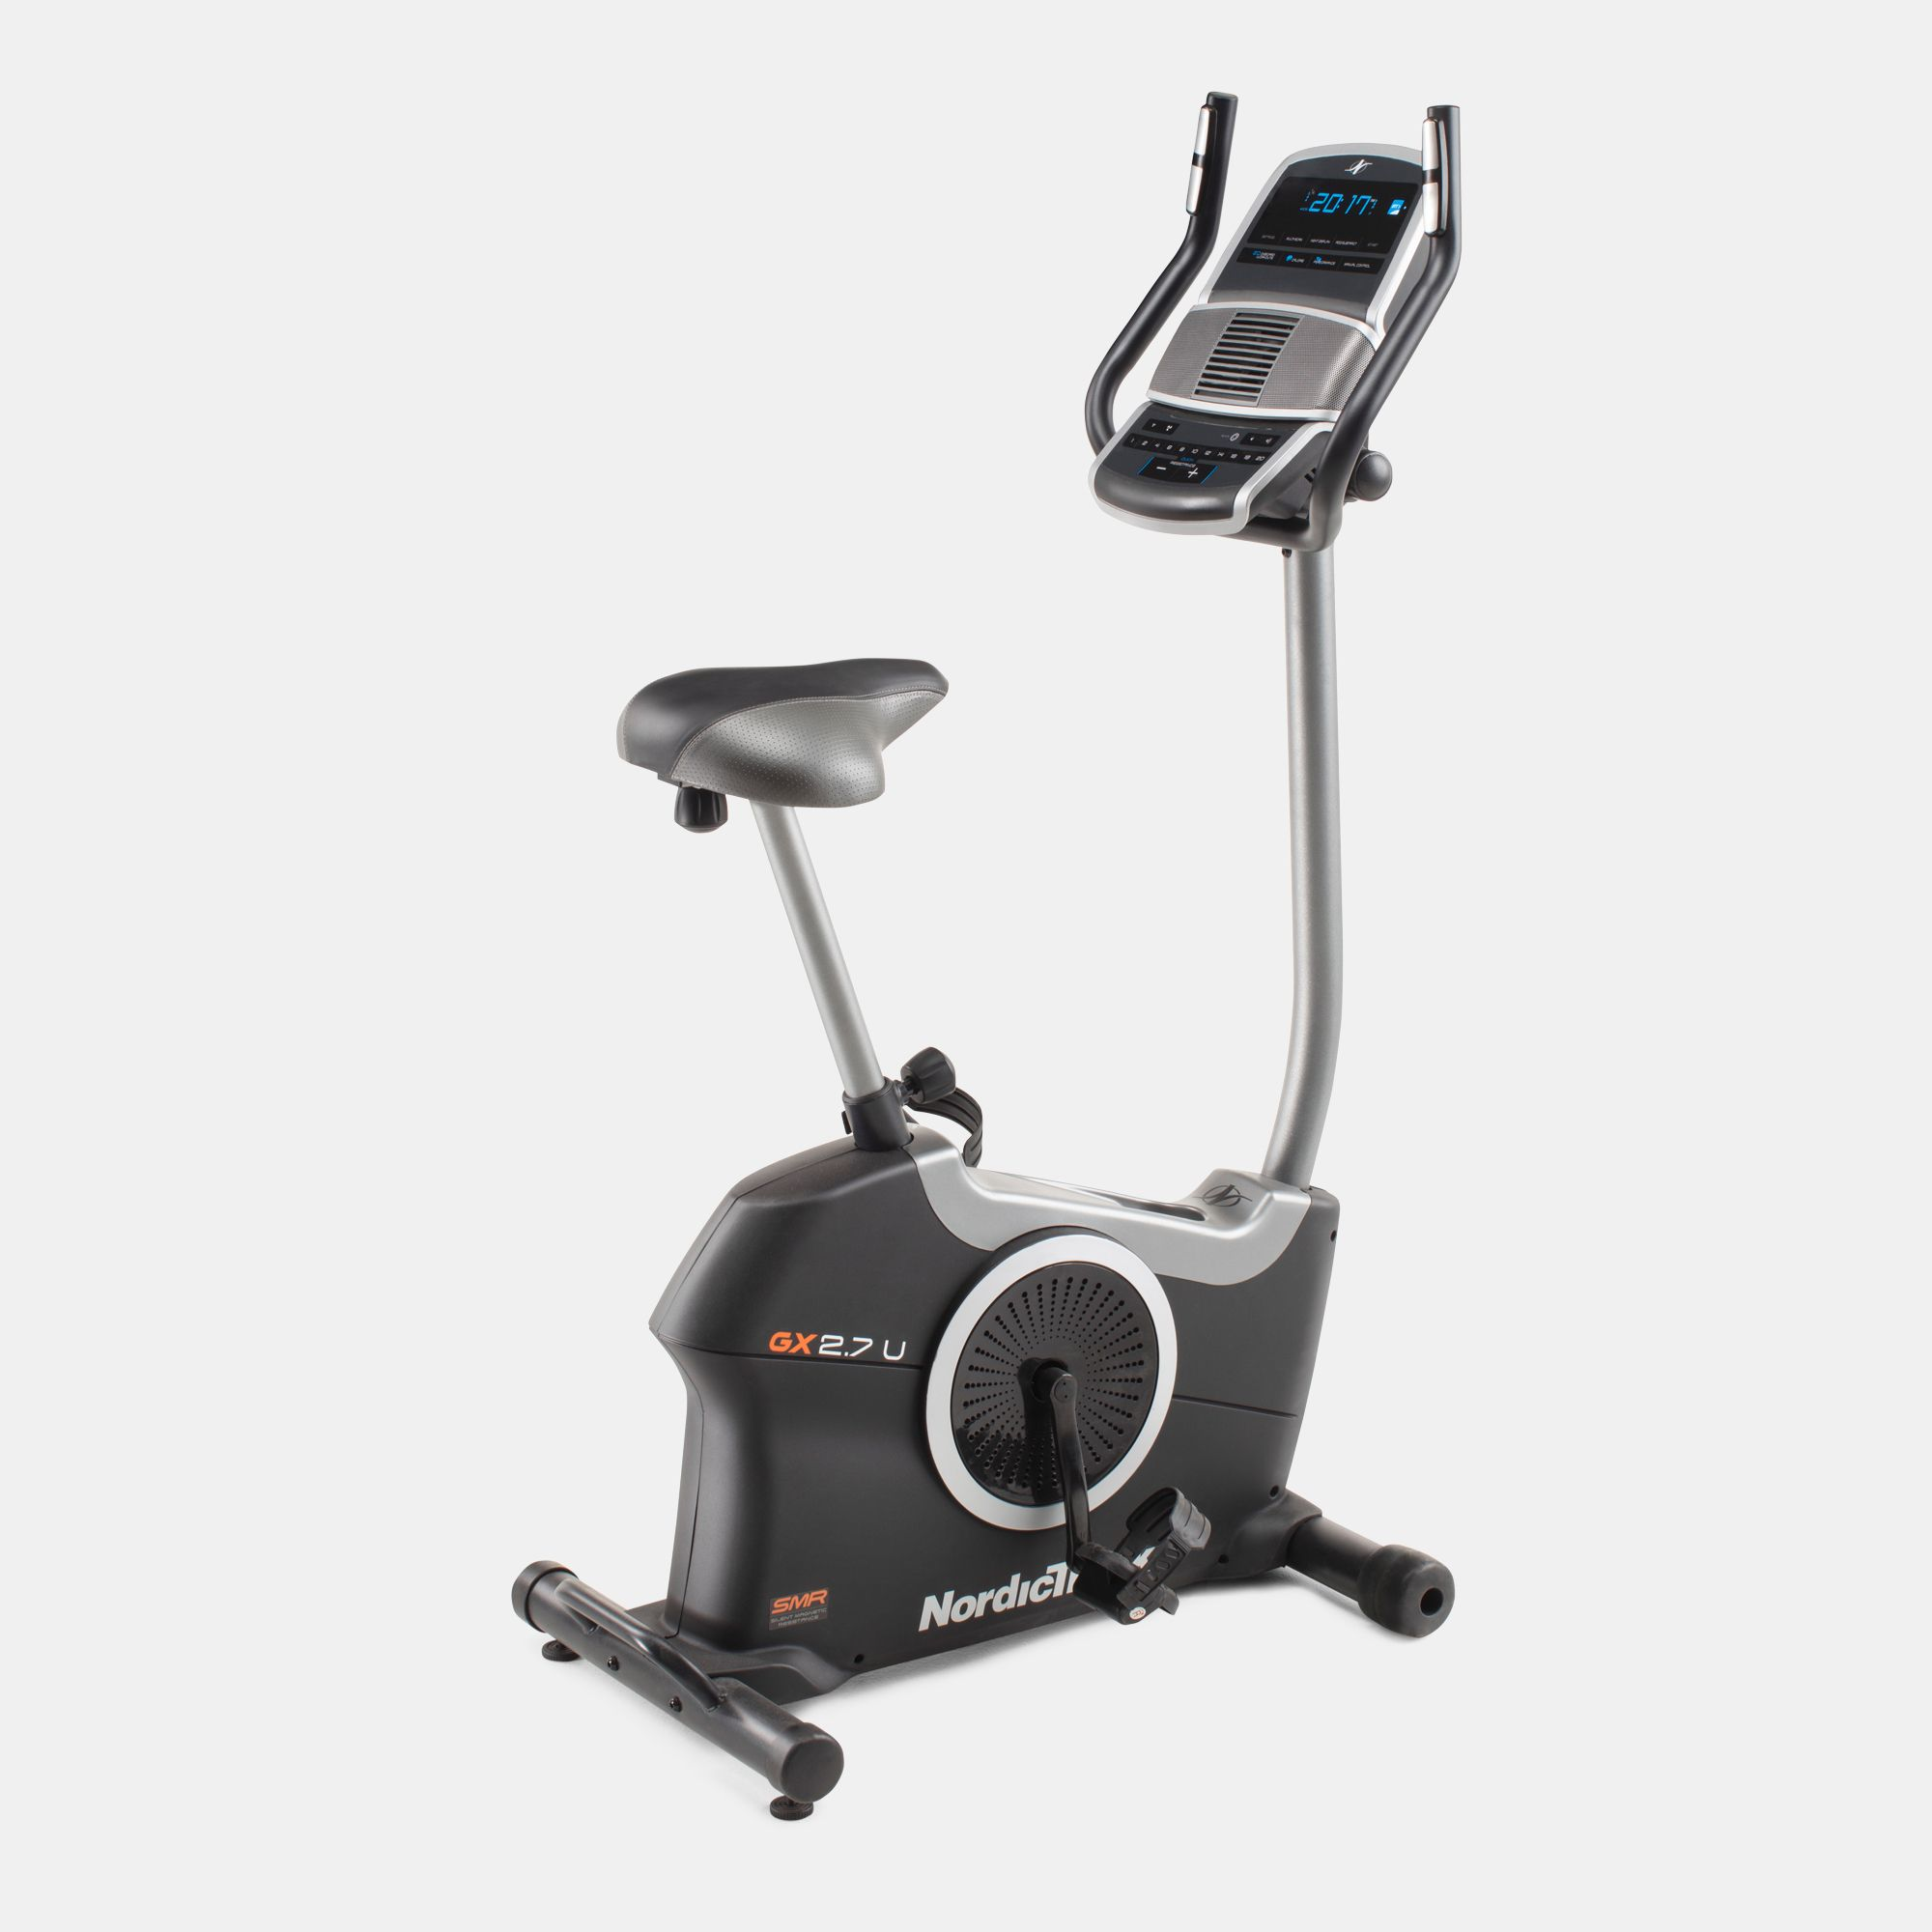 Nordic Track GX 2.7U Exercise Bike